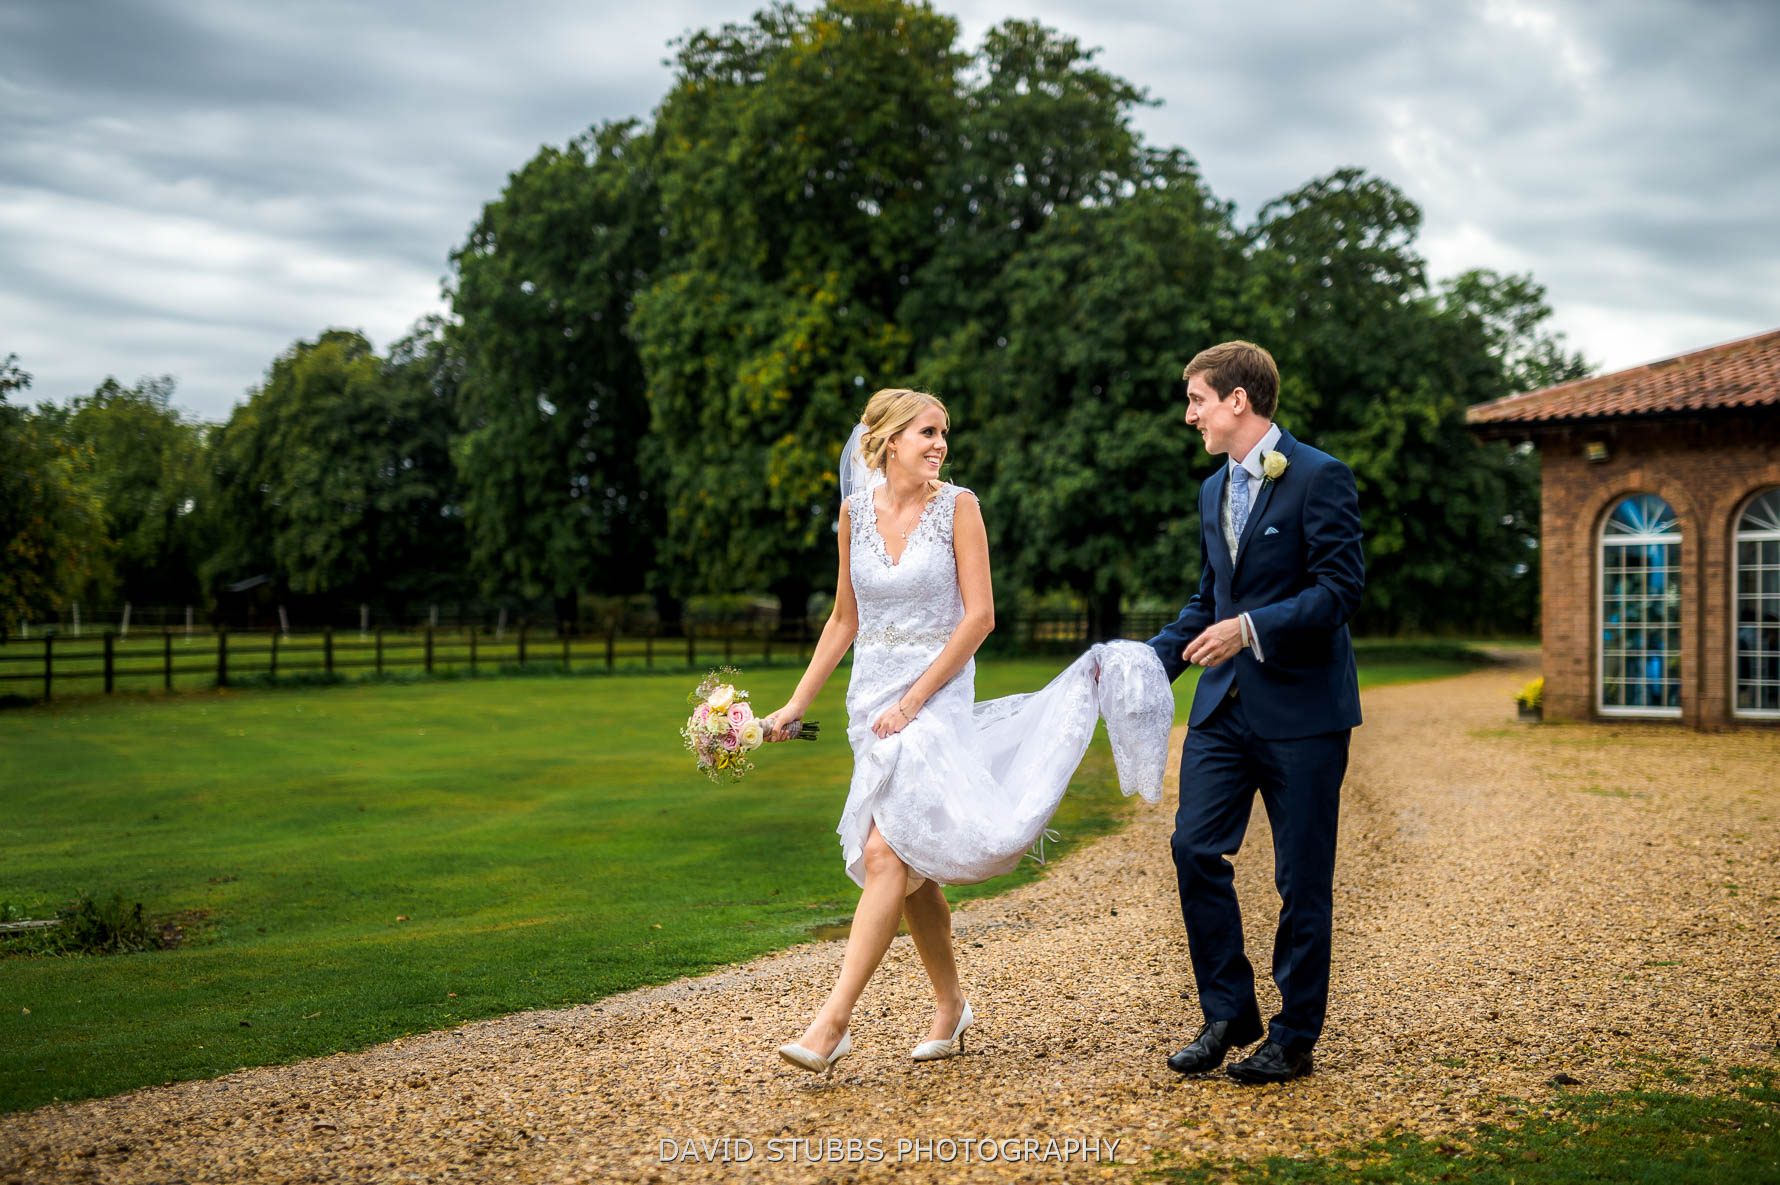 natural wedding photography at Irnham Hall in Lincolnshire